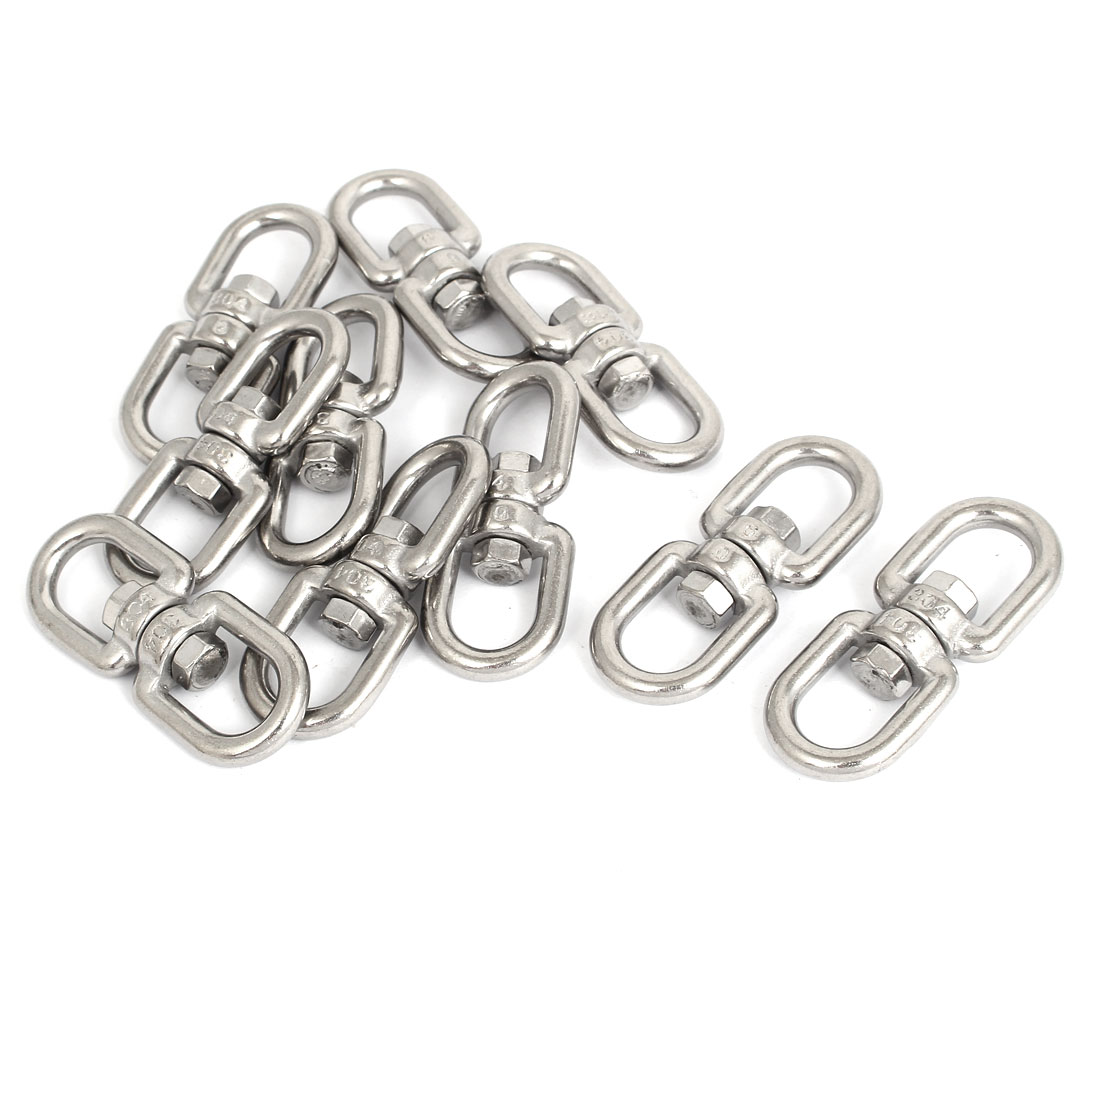 6mm Thickness 304 Stainless Steel Double D Shape Eye Swivel Hook Shackle 10 Pcs